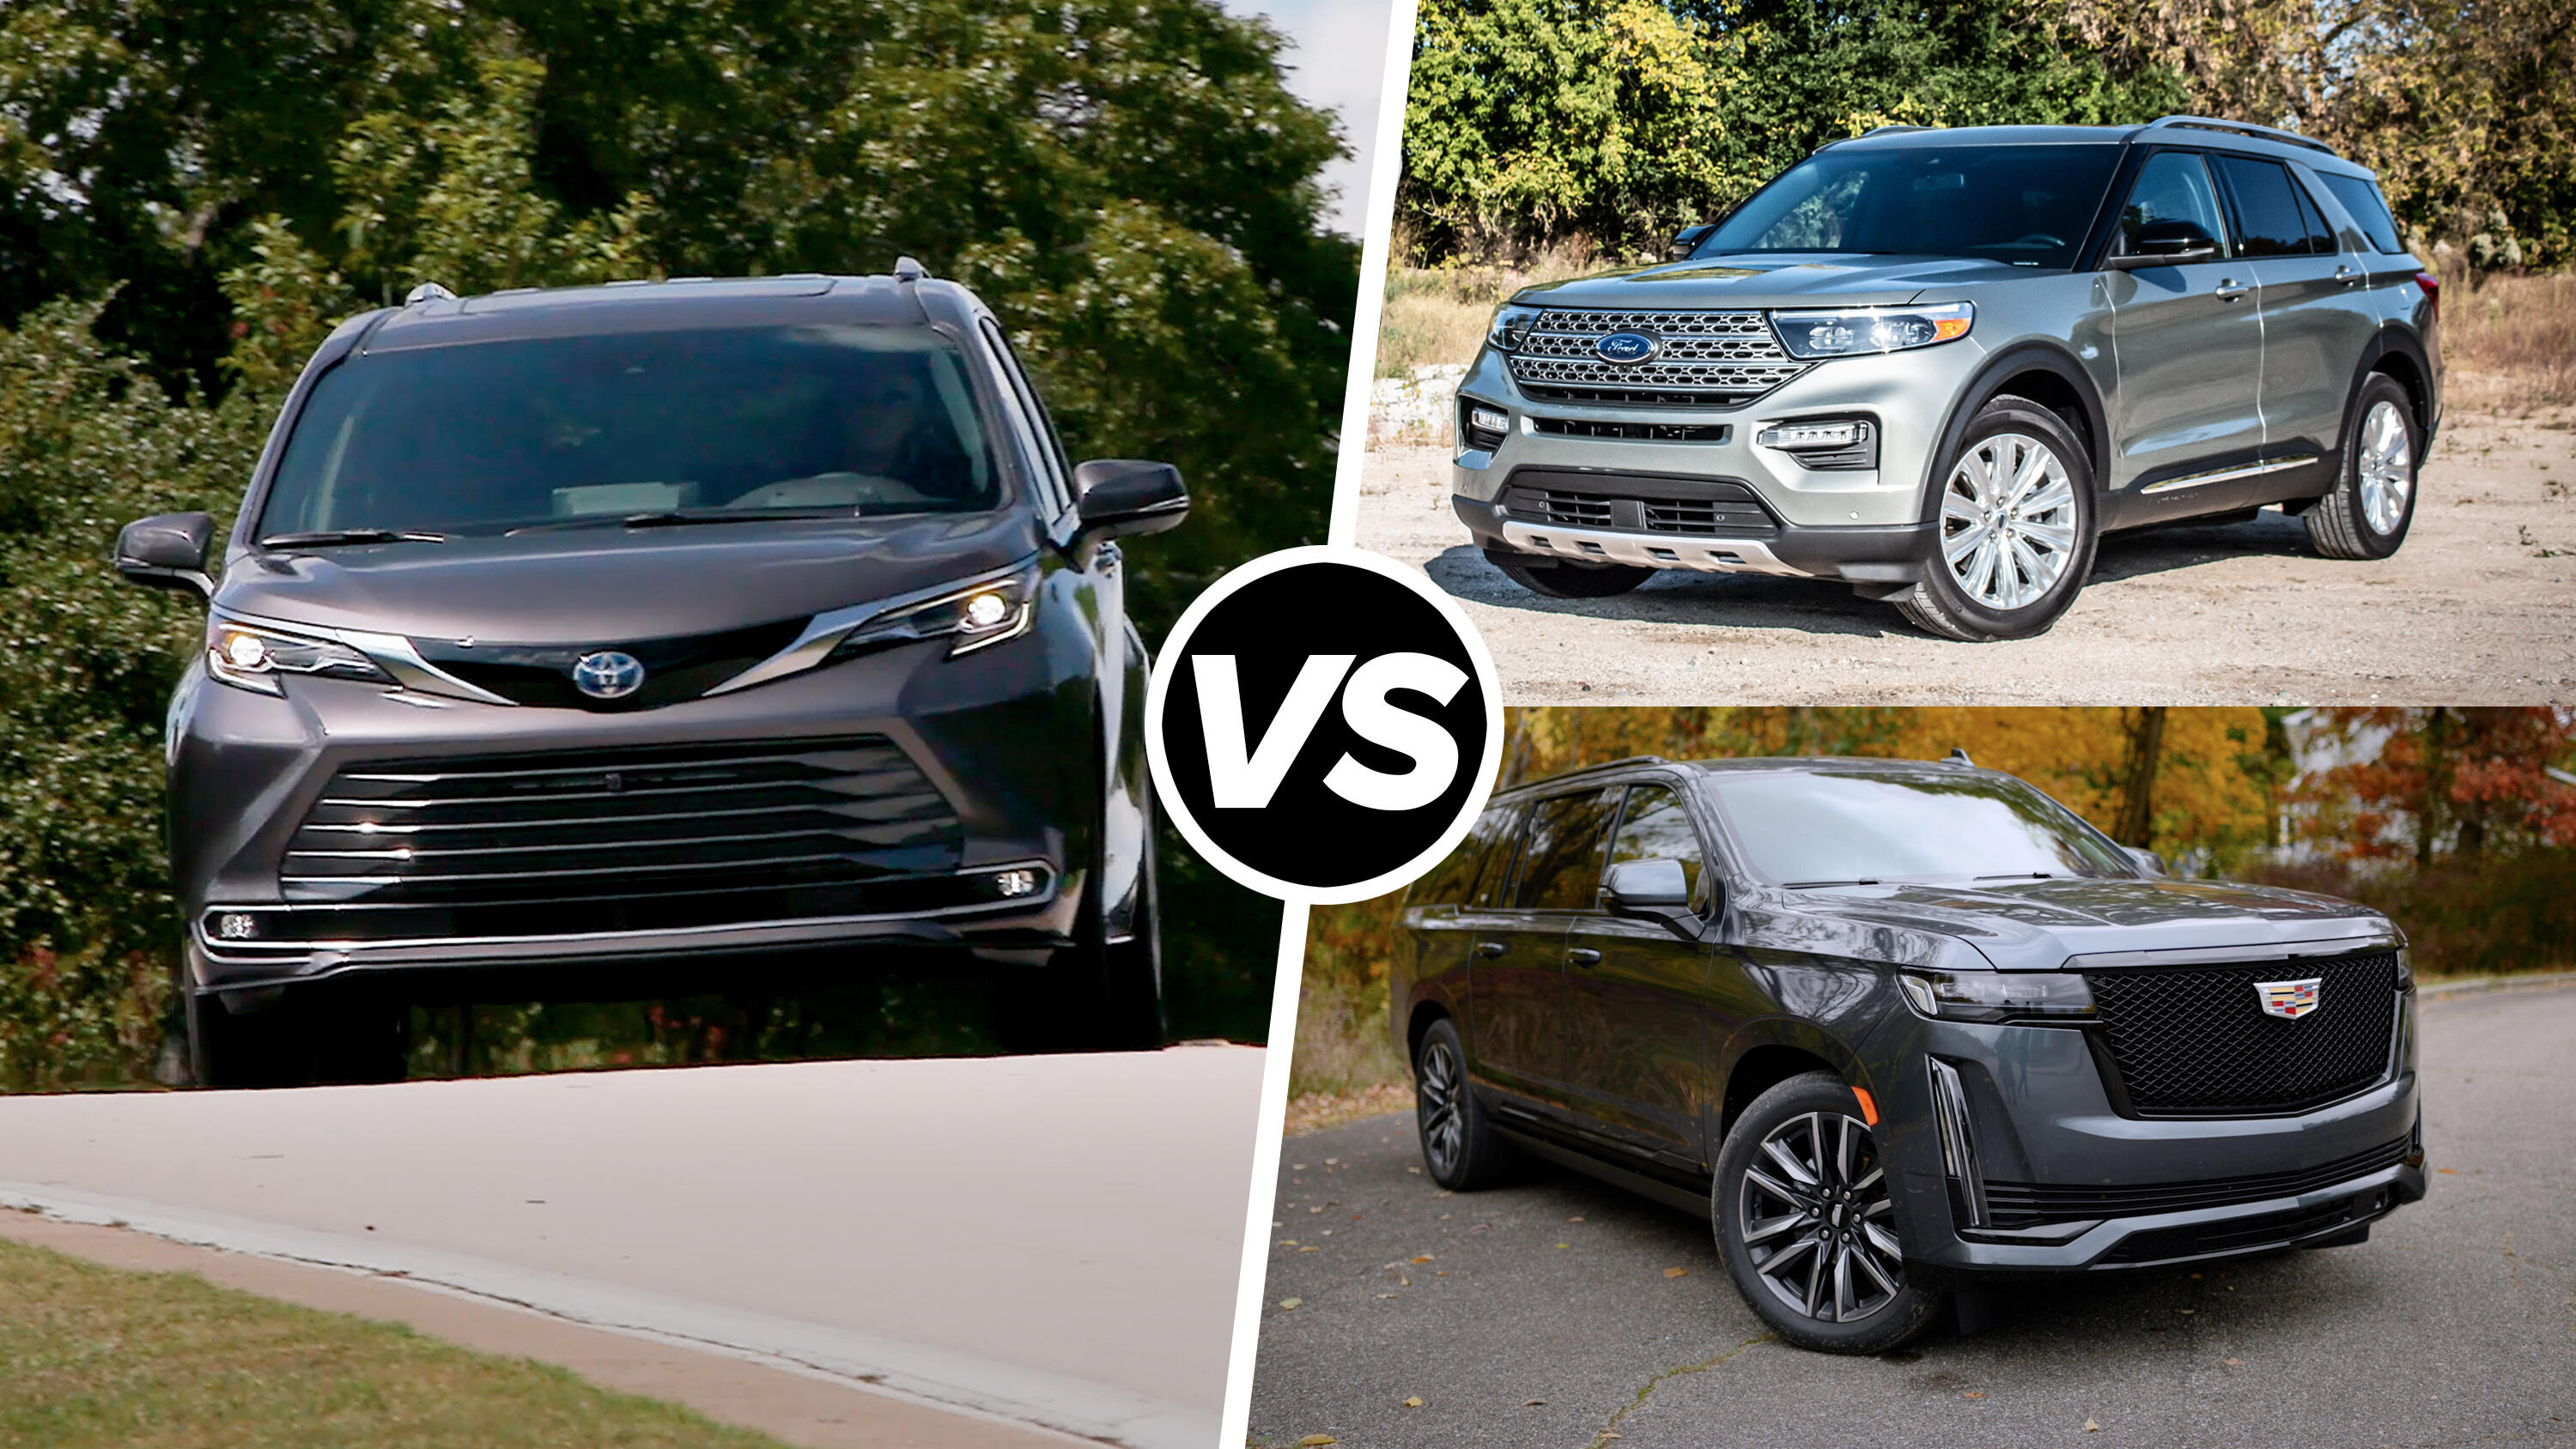 Video: Why the Toyota Sienna minivan is a smart choice